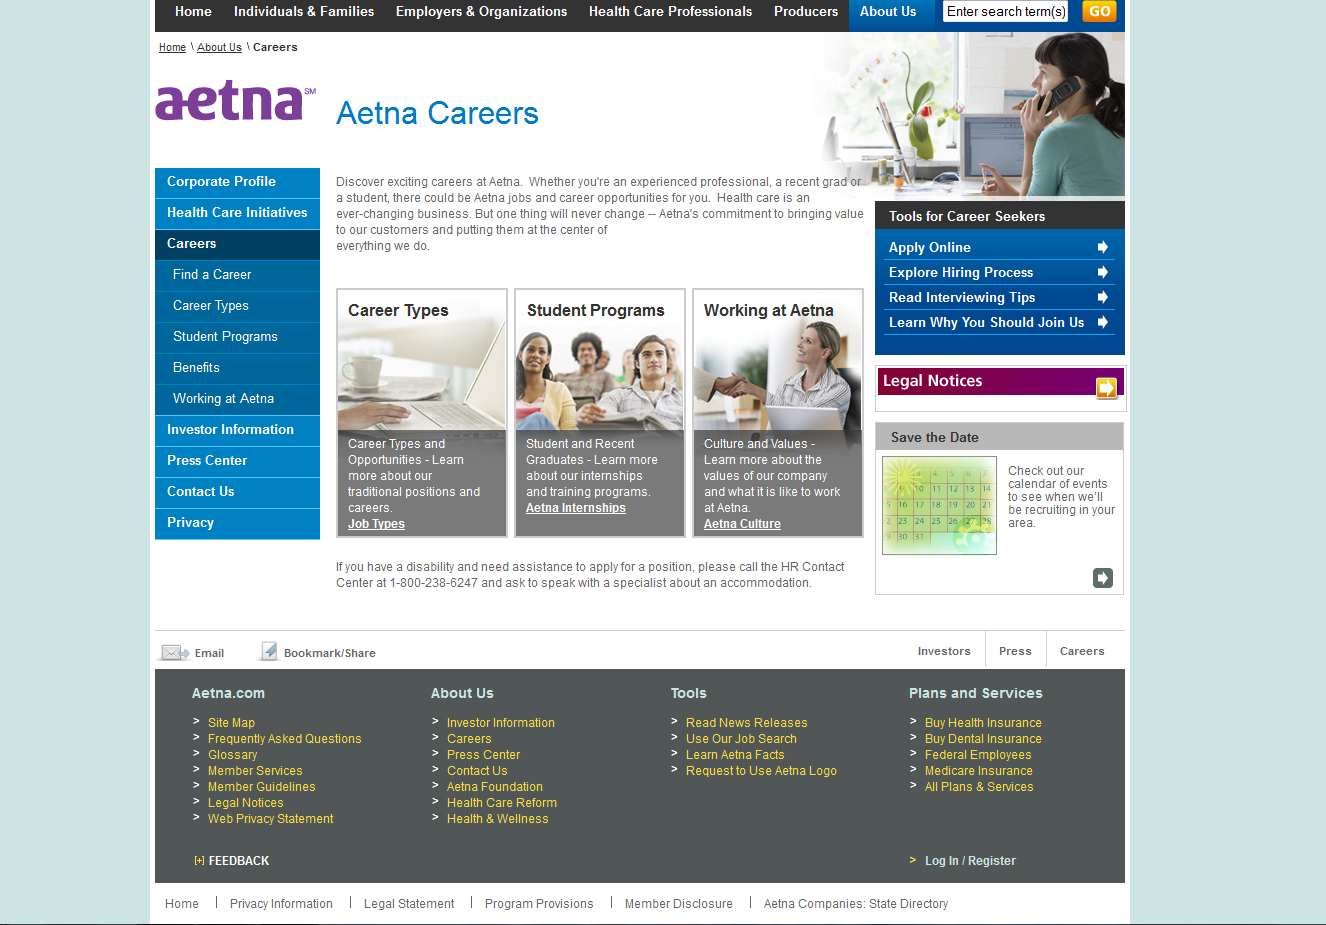 Aetna Work At Home Jobs In Customer Service Online Employment Working From Home Work From Home Jobs